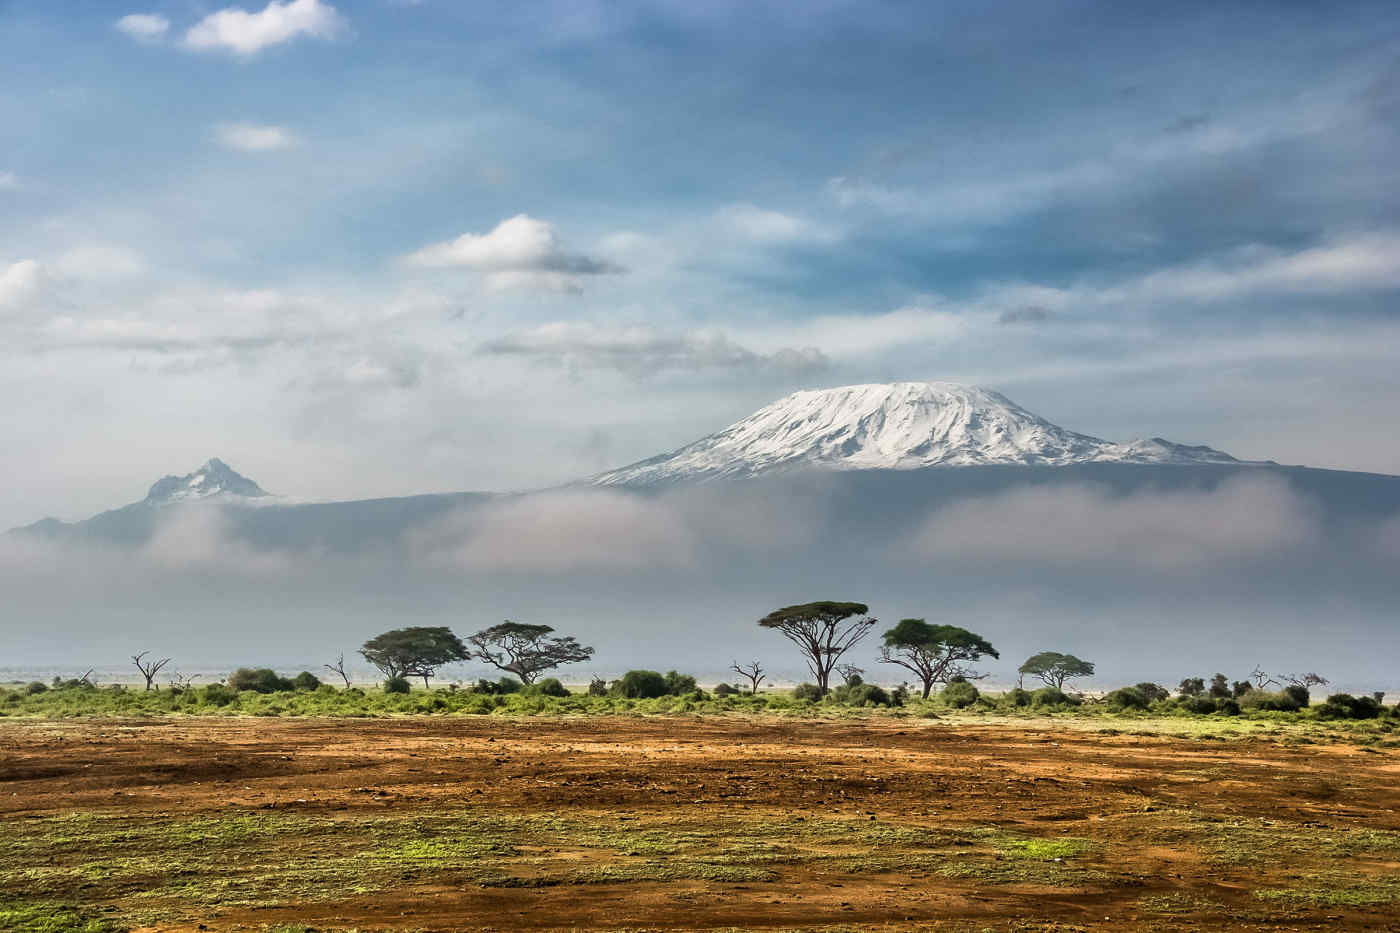 Amboseli National Park & Mount Kilimanjaro